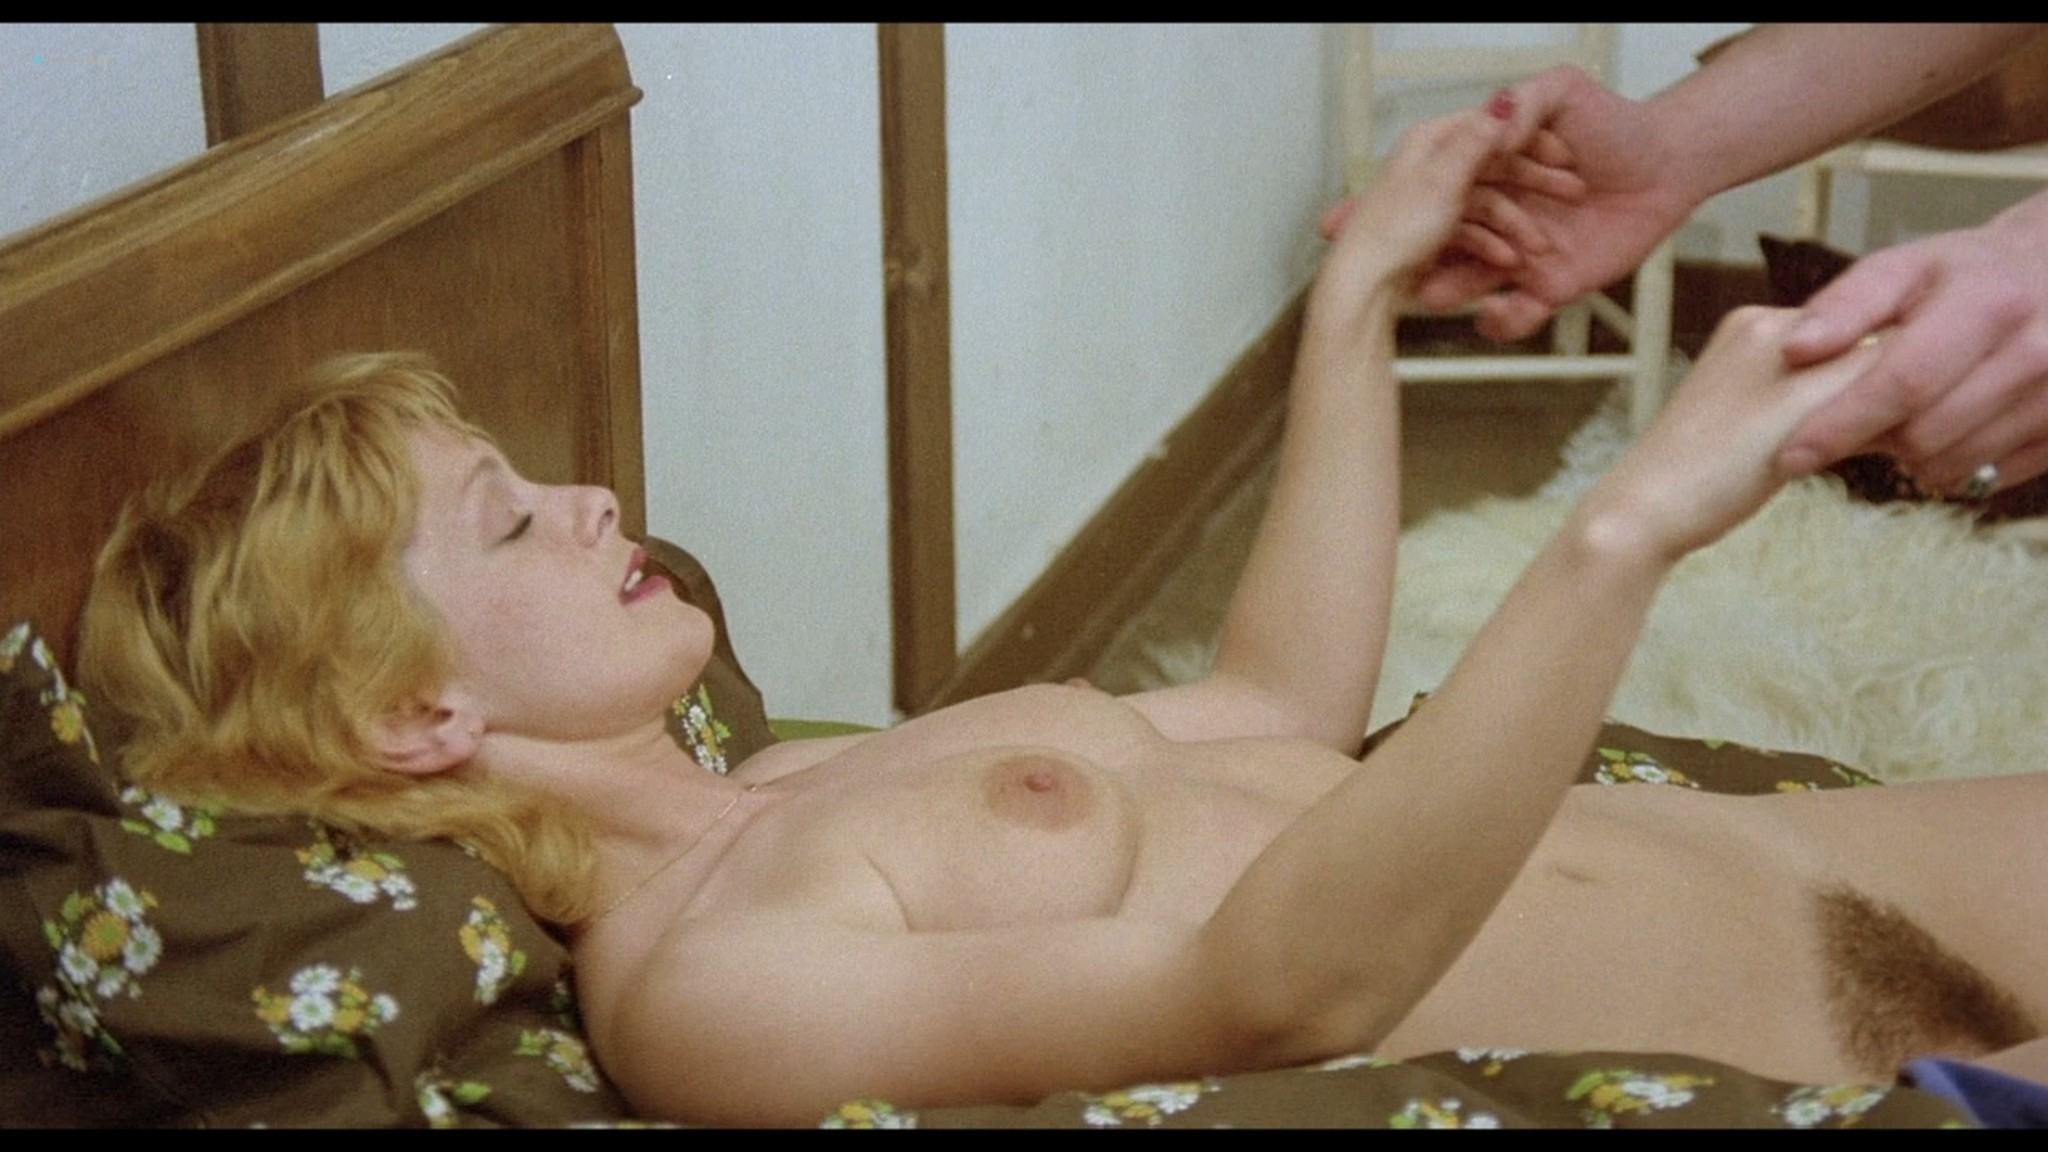 Brigitte Lahaie nude sex Elsa Maroussia and other lots of sex - Swedish Gas Pump Girls (1980) HD 720p BluRay (17)